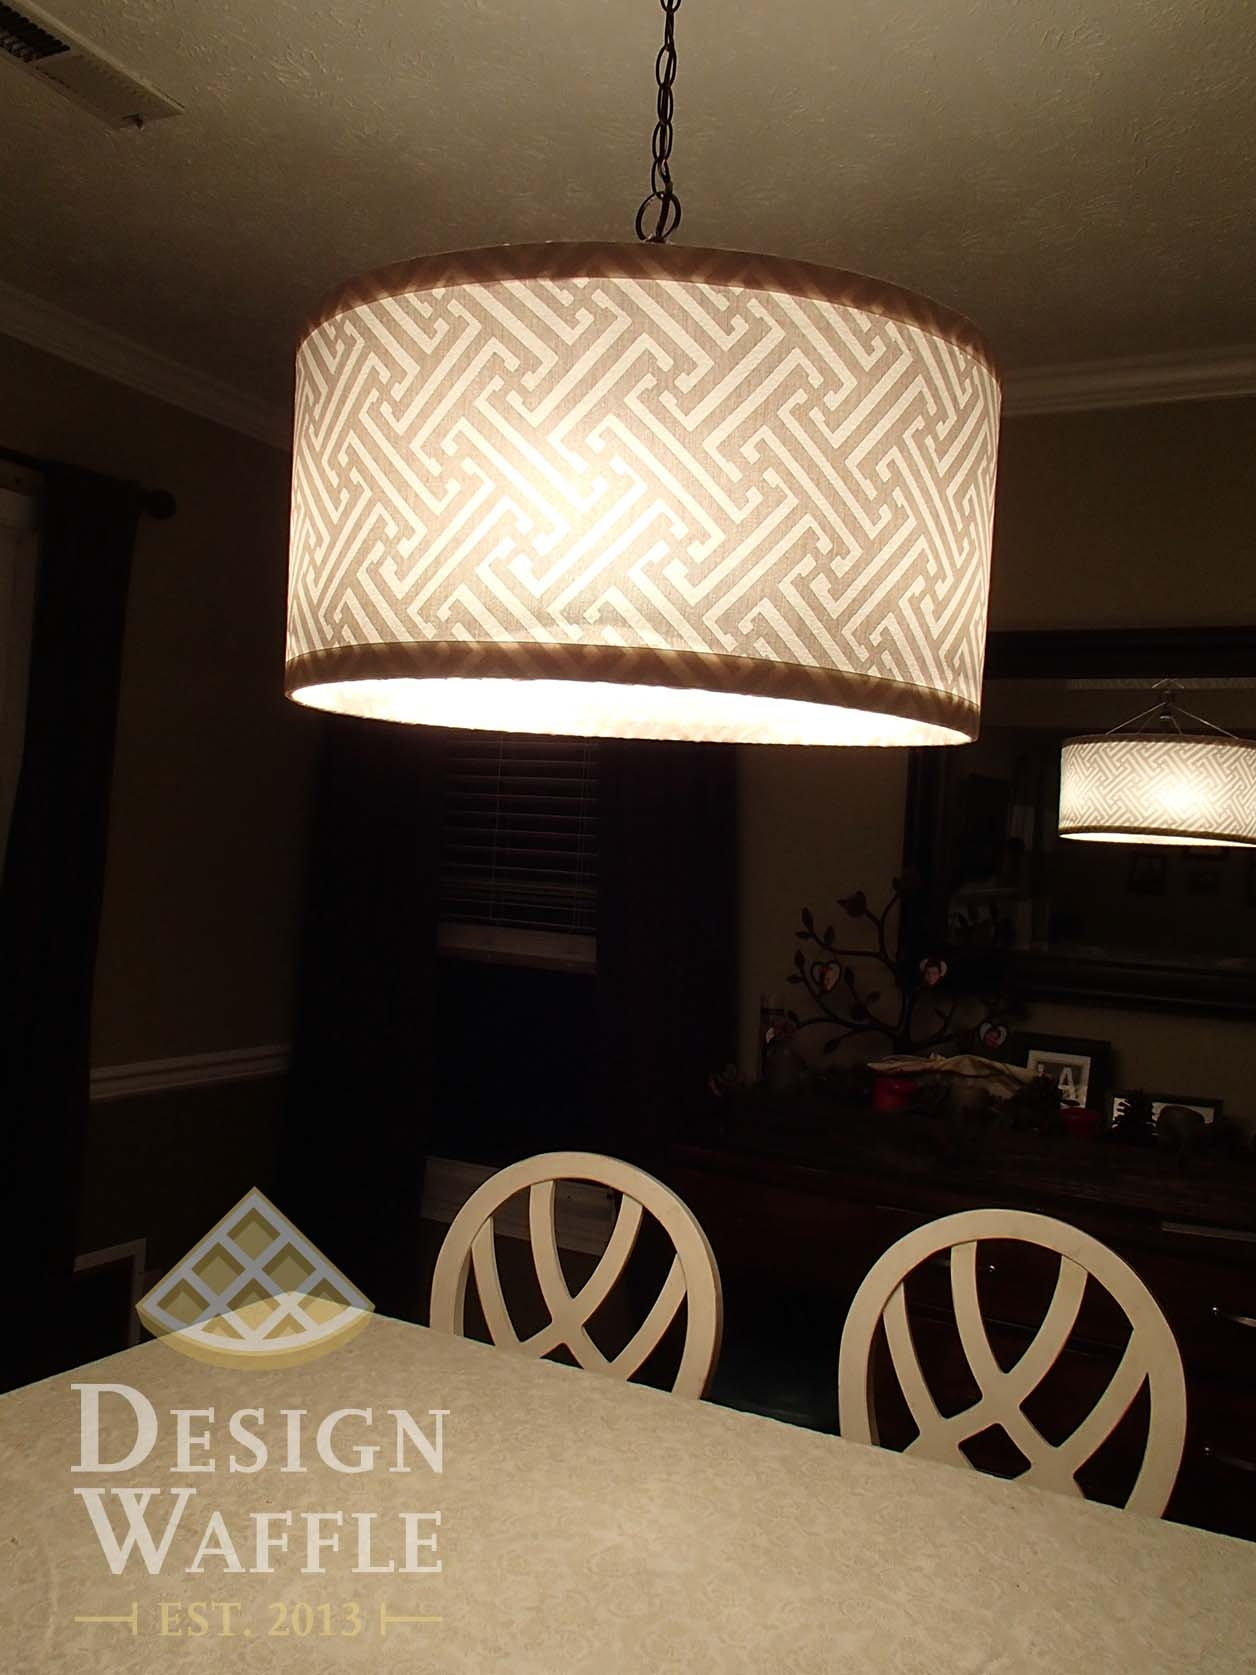 Diy Chandelier Drum Shade Design Waffle With Drum Lamp Shades For Chandeliers (View 13 of 25)